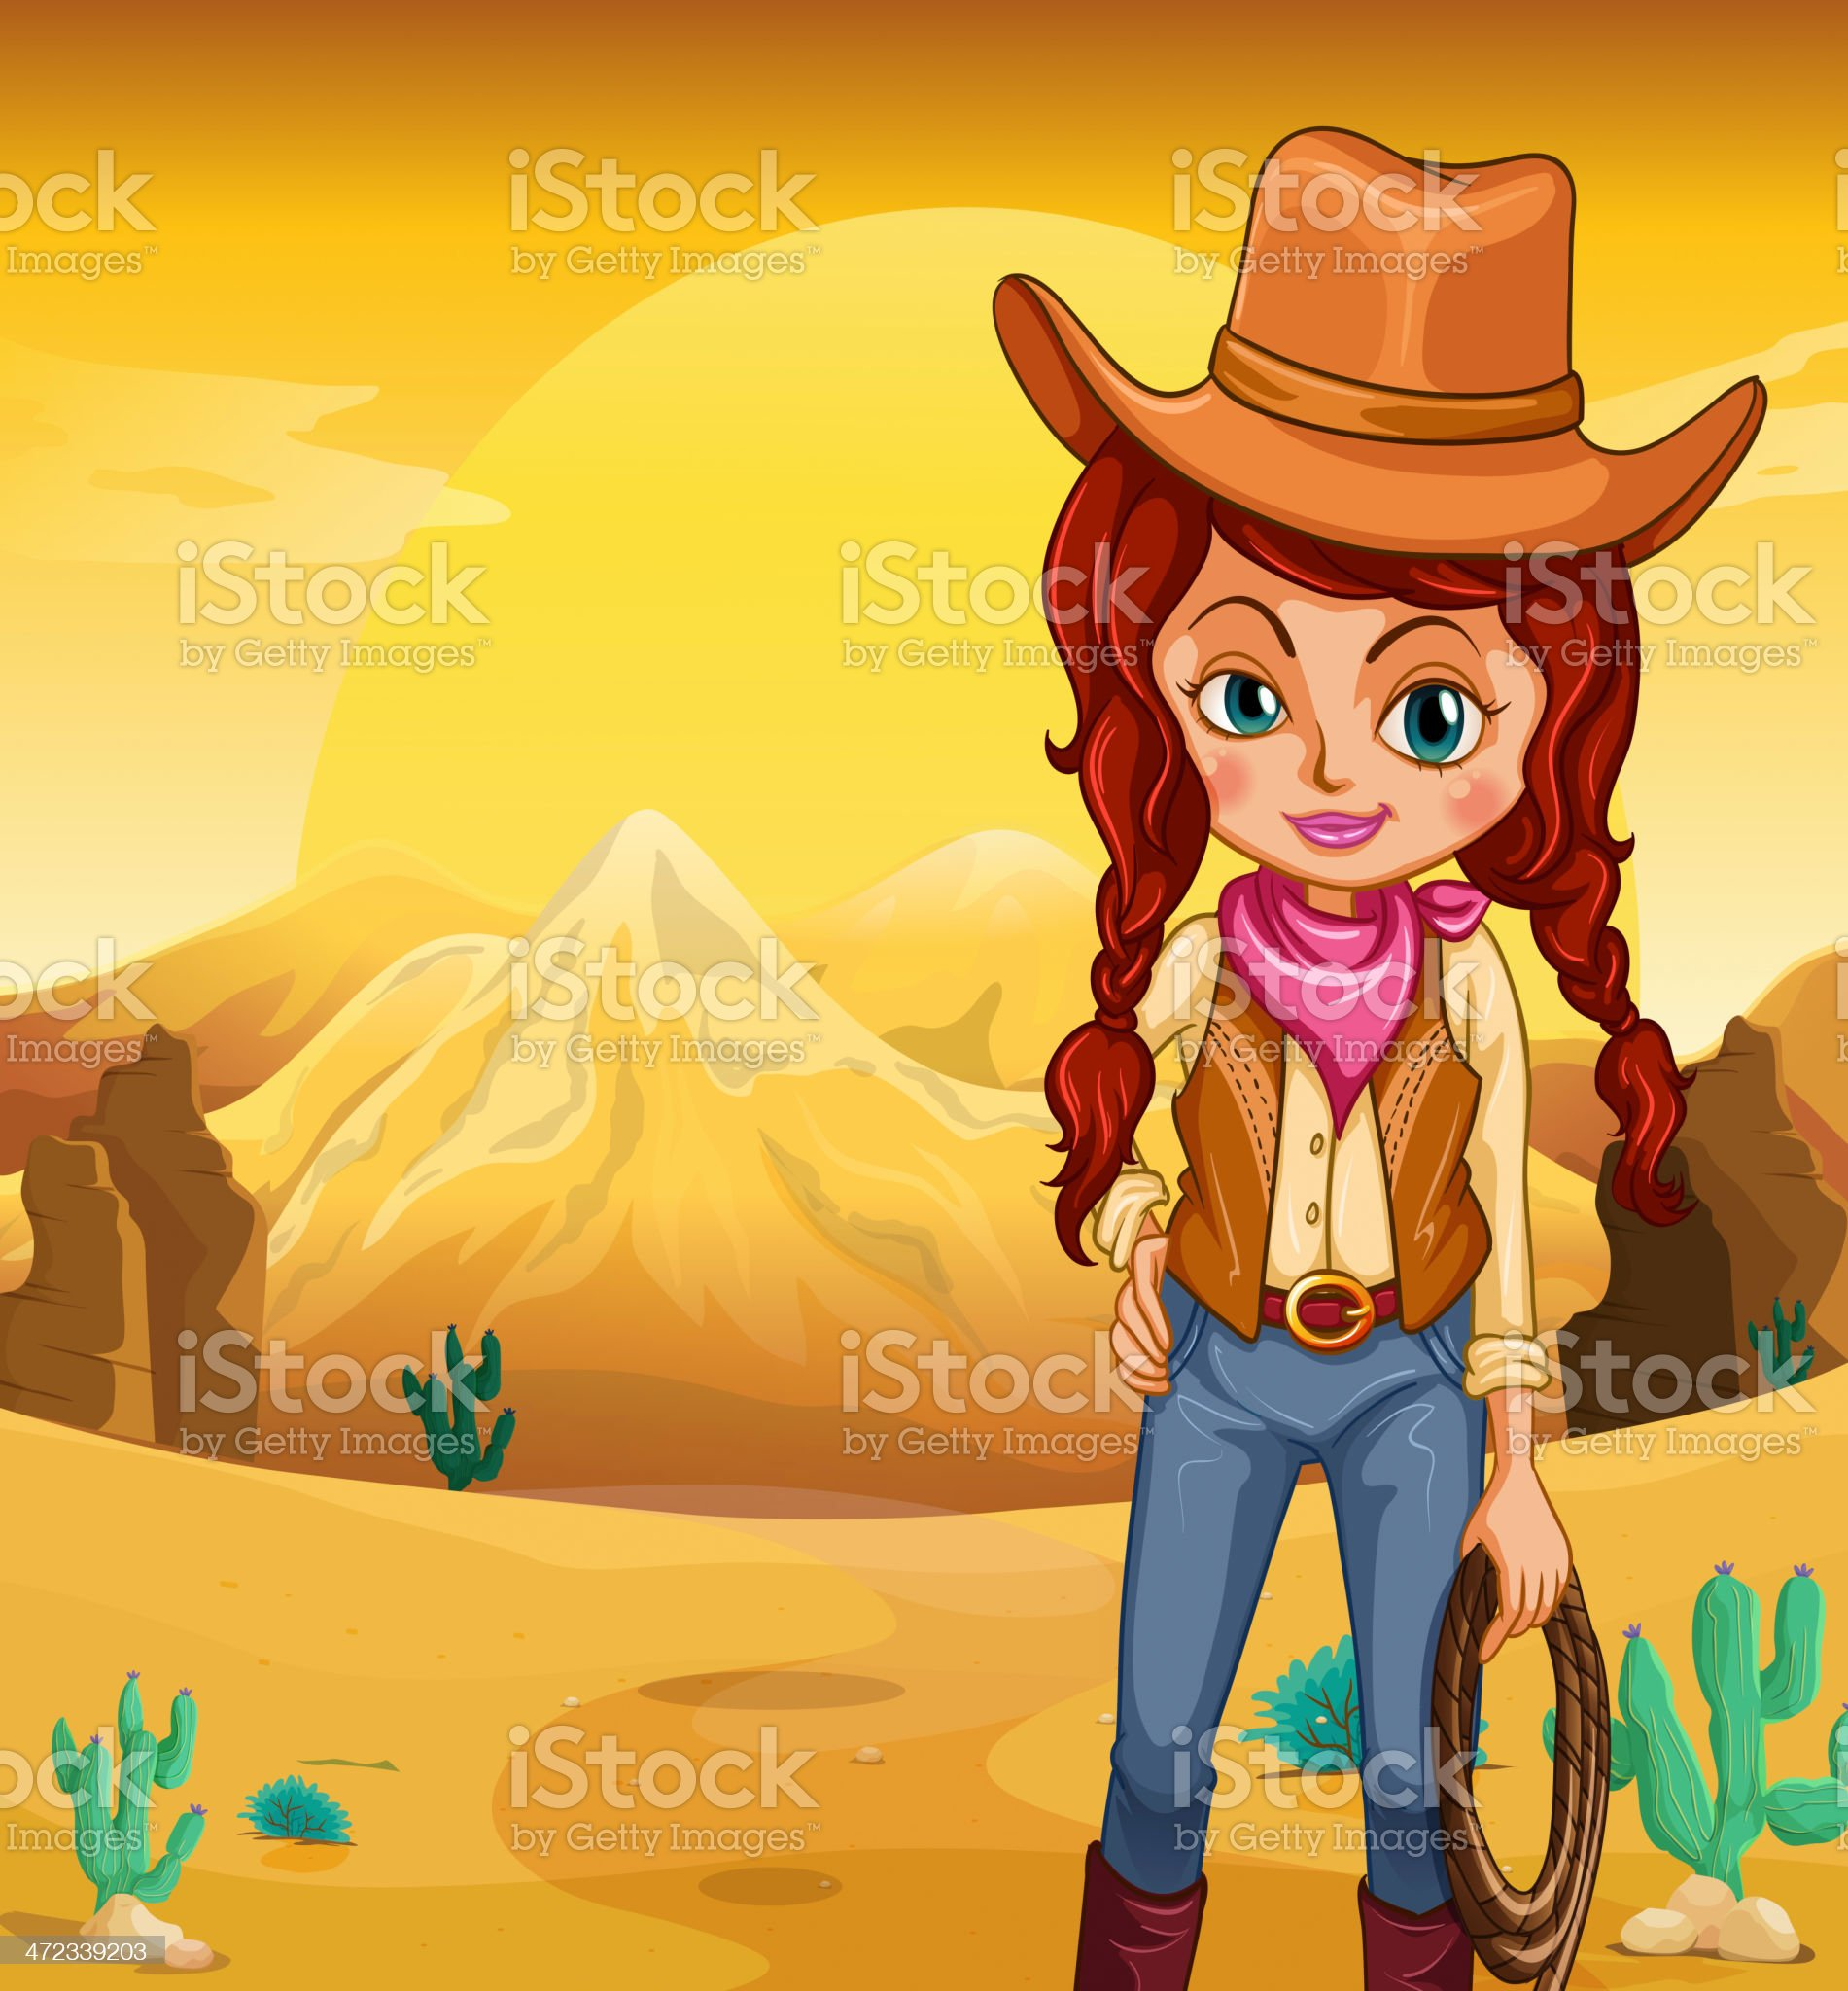 Cowgirl holding a rope standing in the desert royalty-free stock vector art